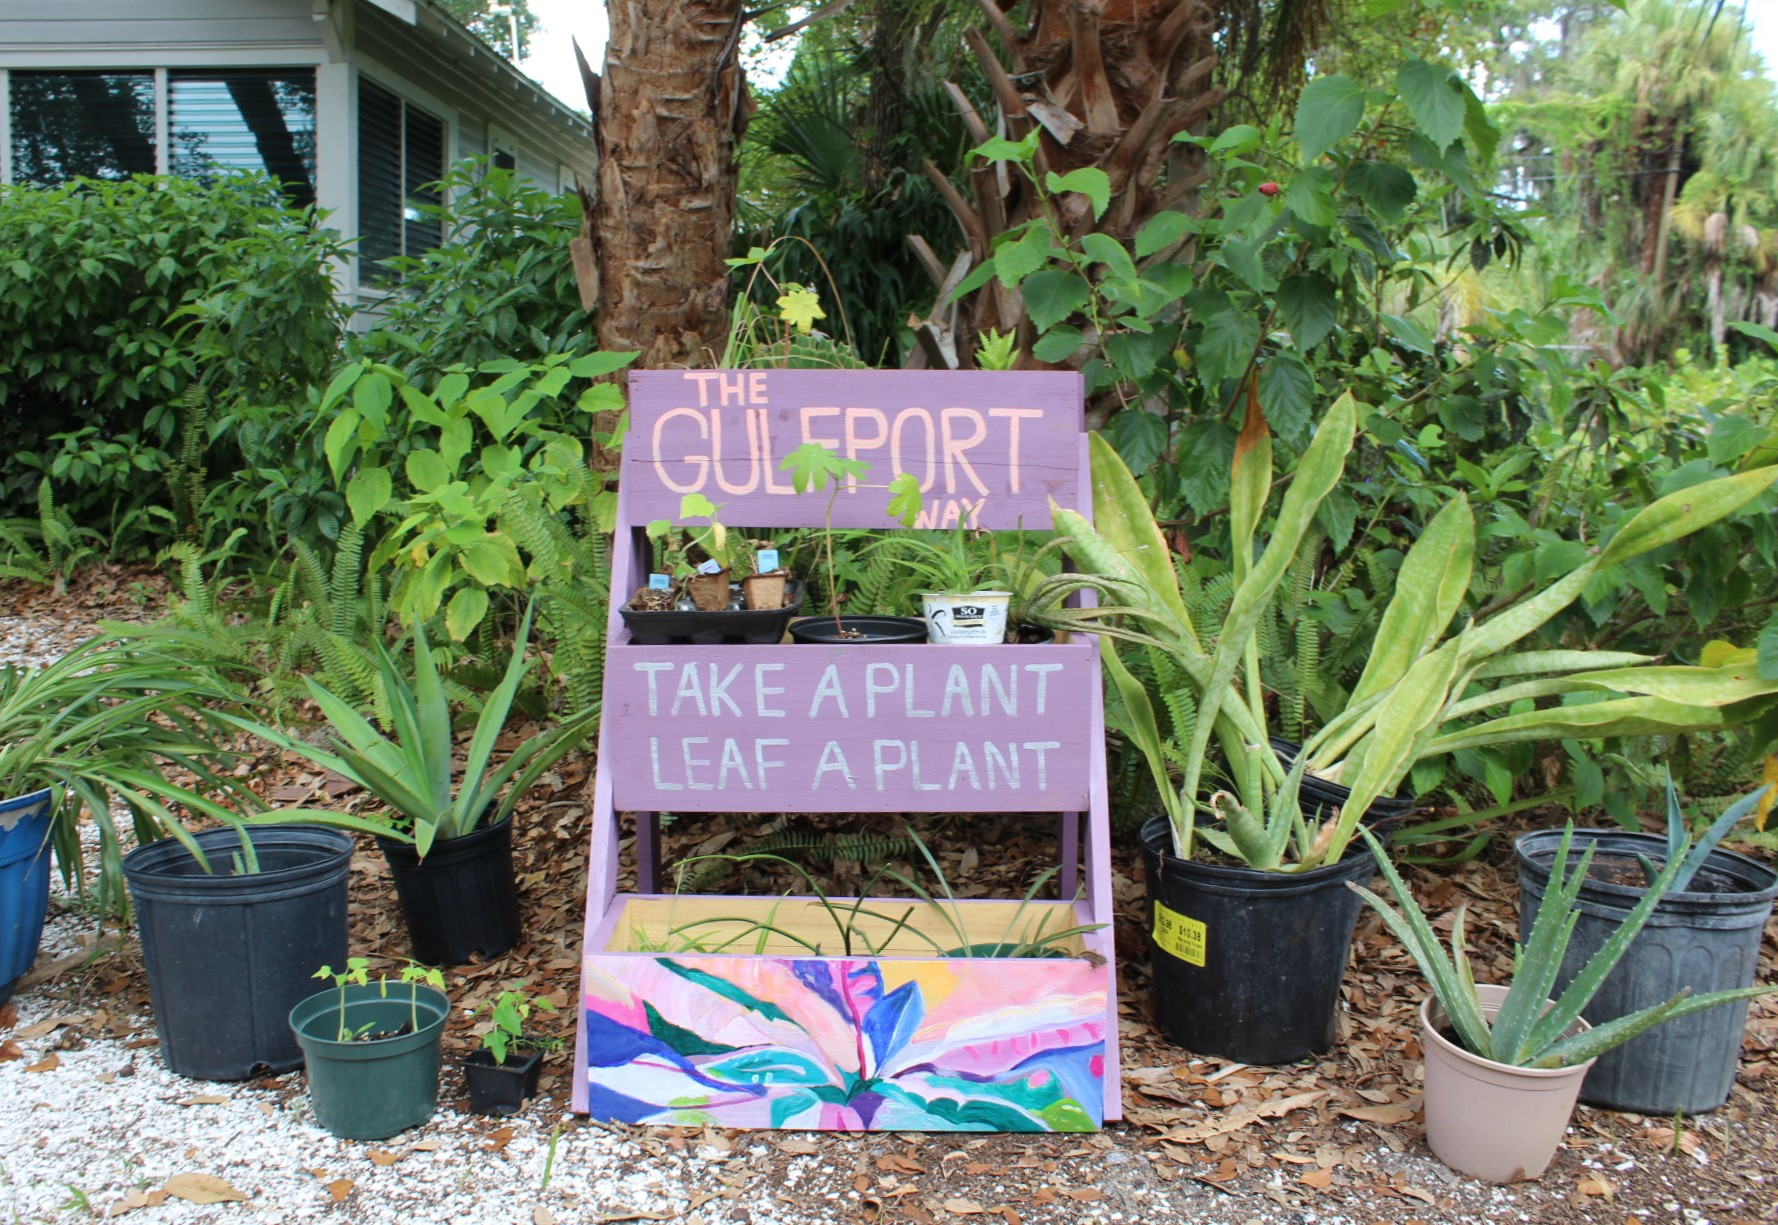 Purple plant swap stand in Gulfport Florida